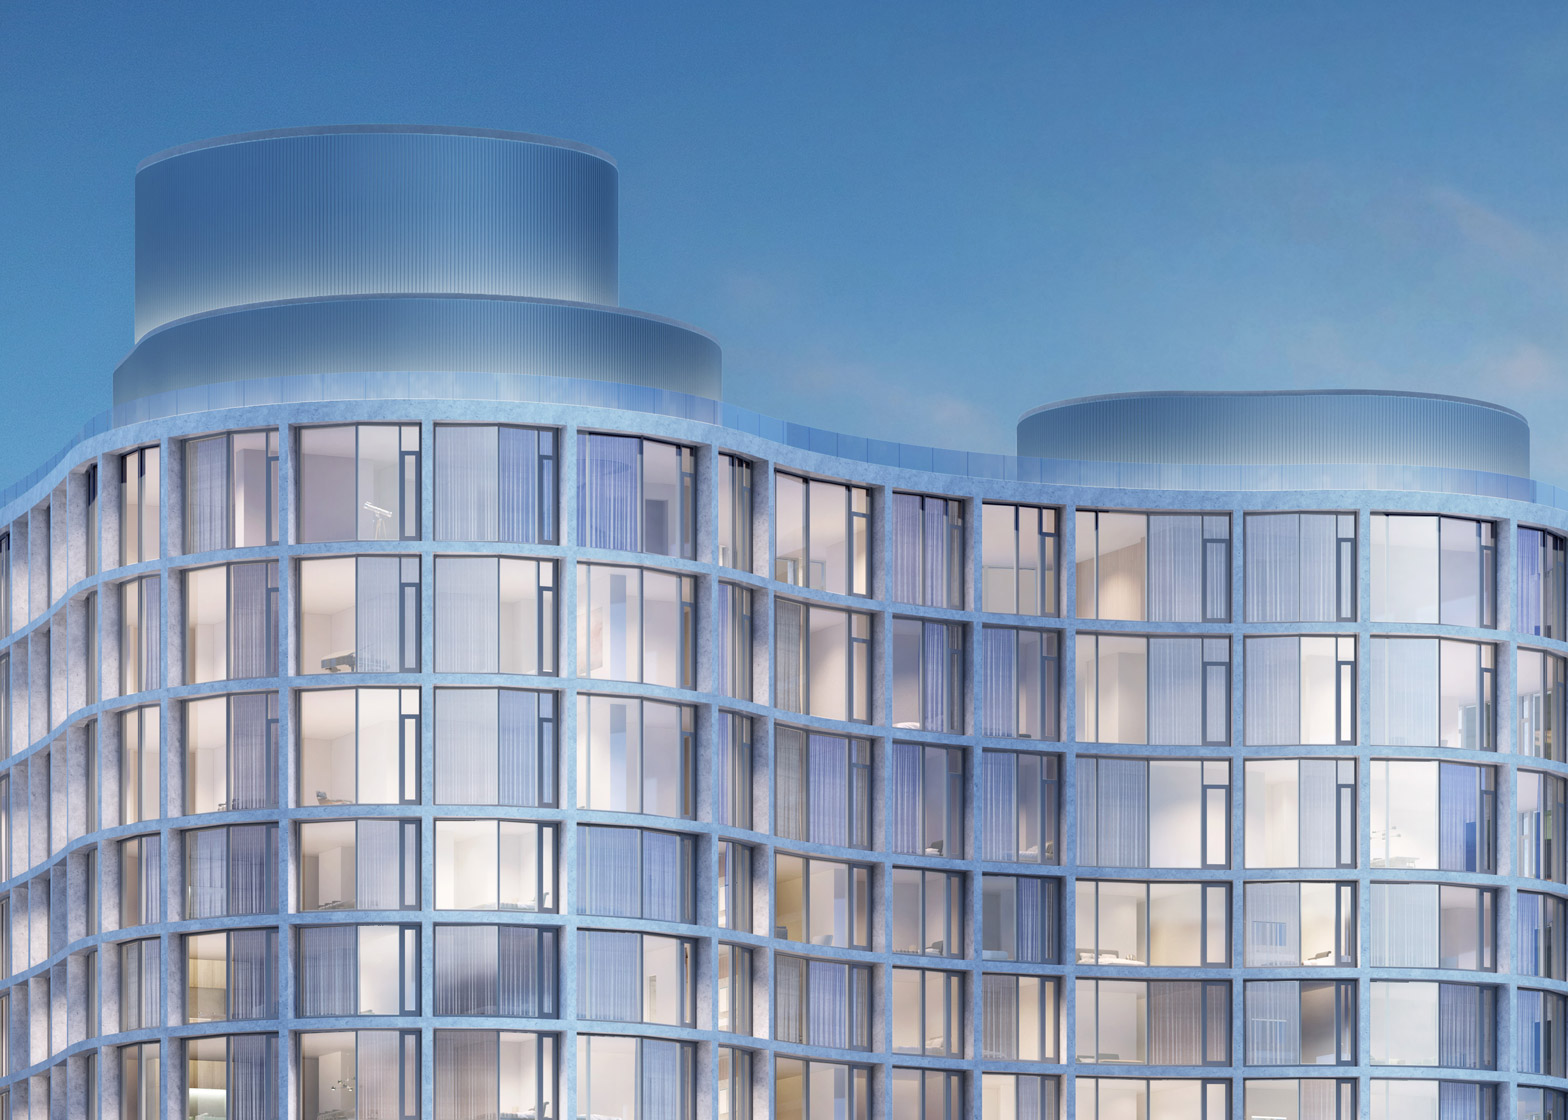 160 Leroy apartments in New York by HErzog & de Meuron and Ian Schrager